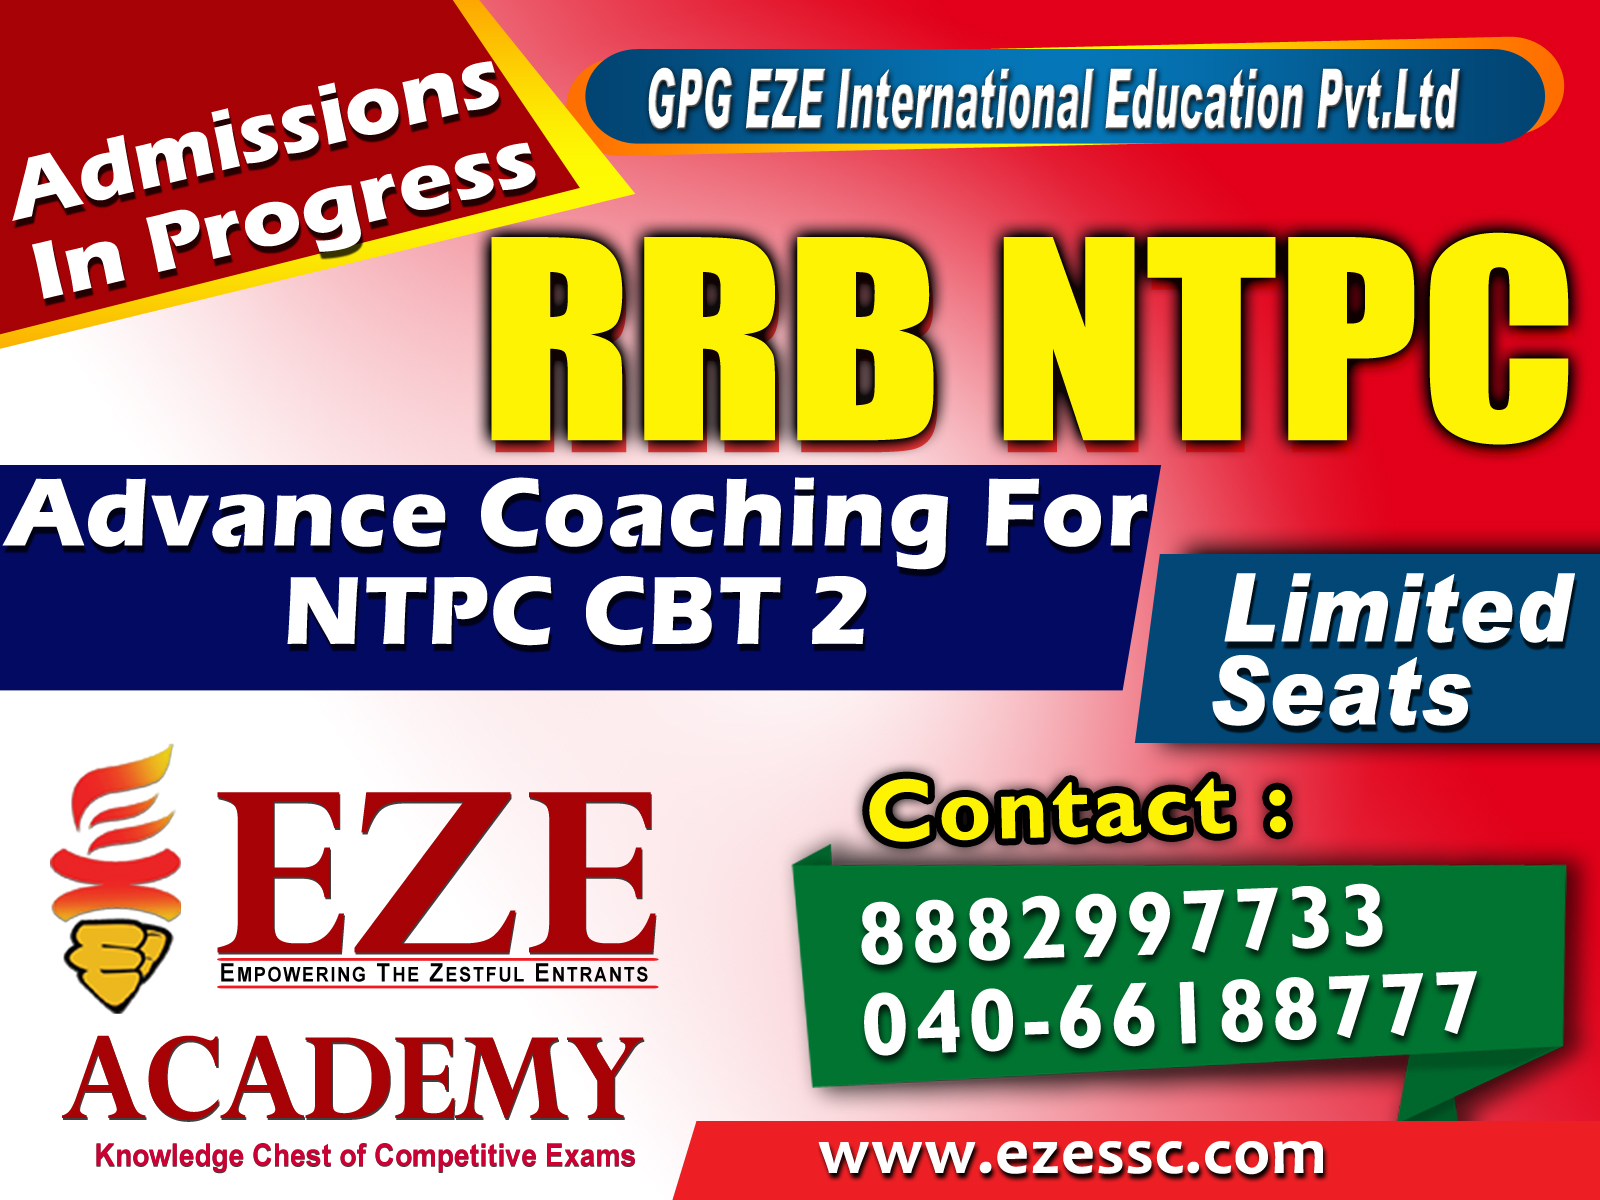 rrb ntpc cbt 2 coaching